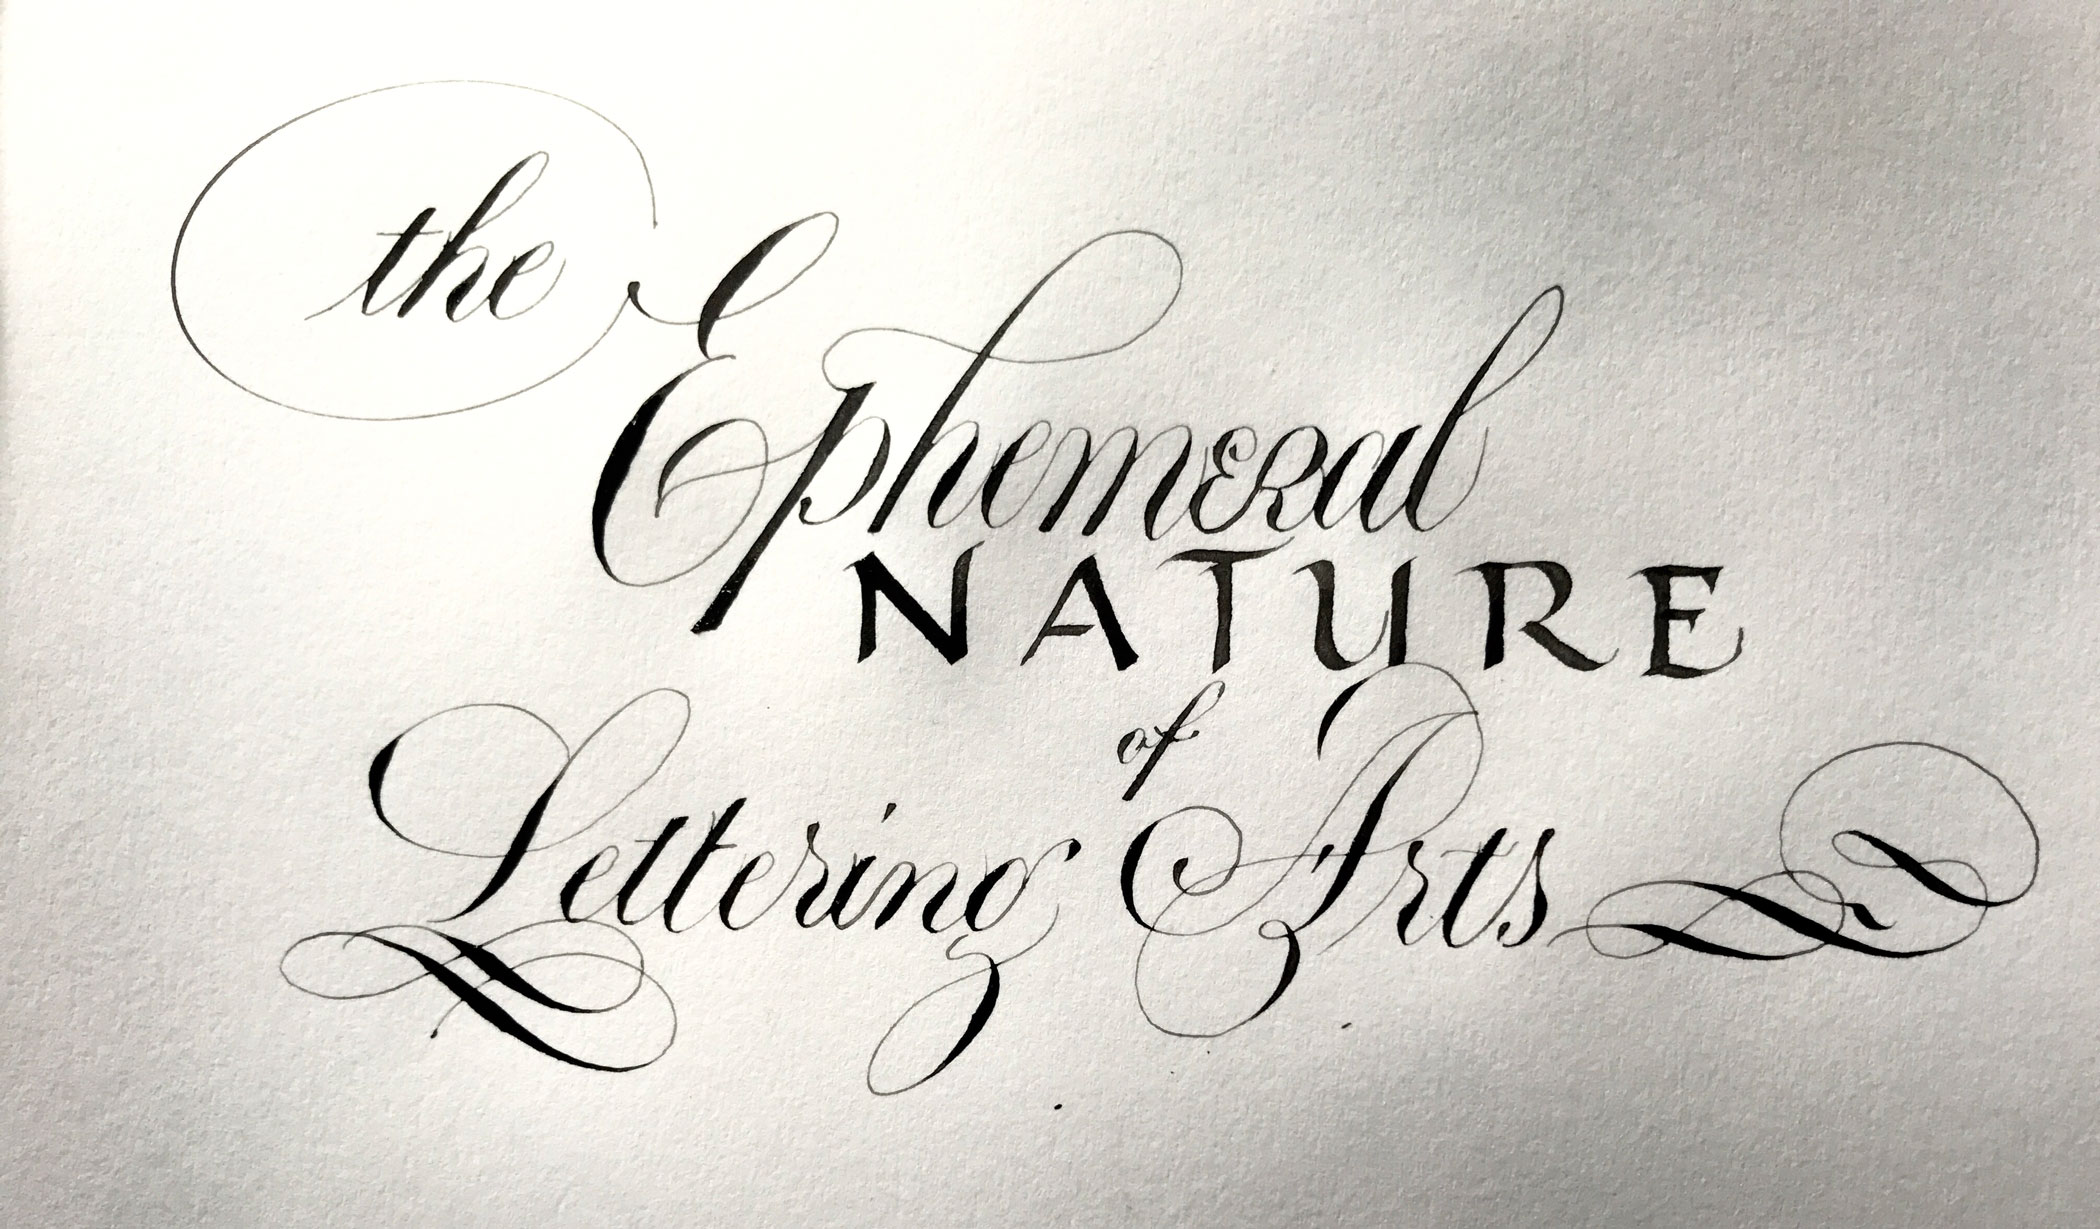 The Ephemeral Nature of Lettering Arts